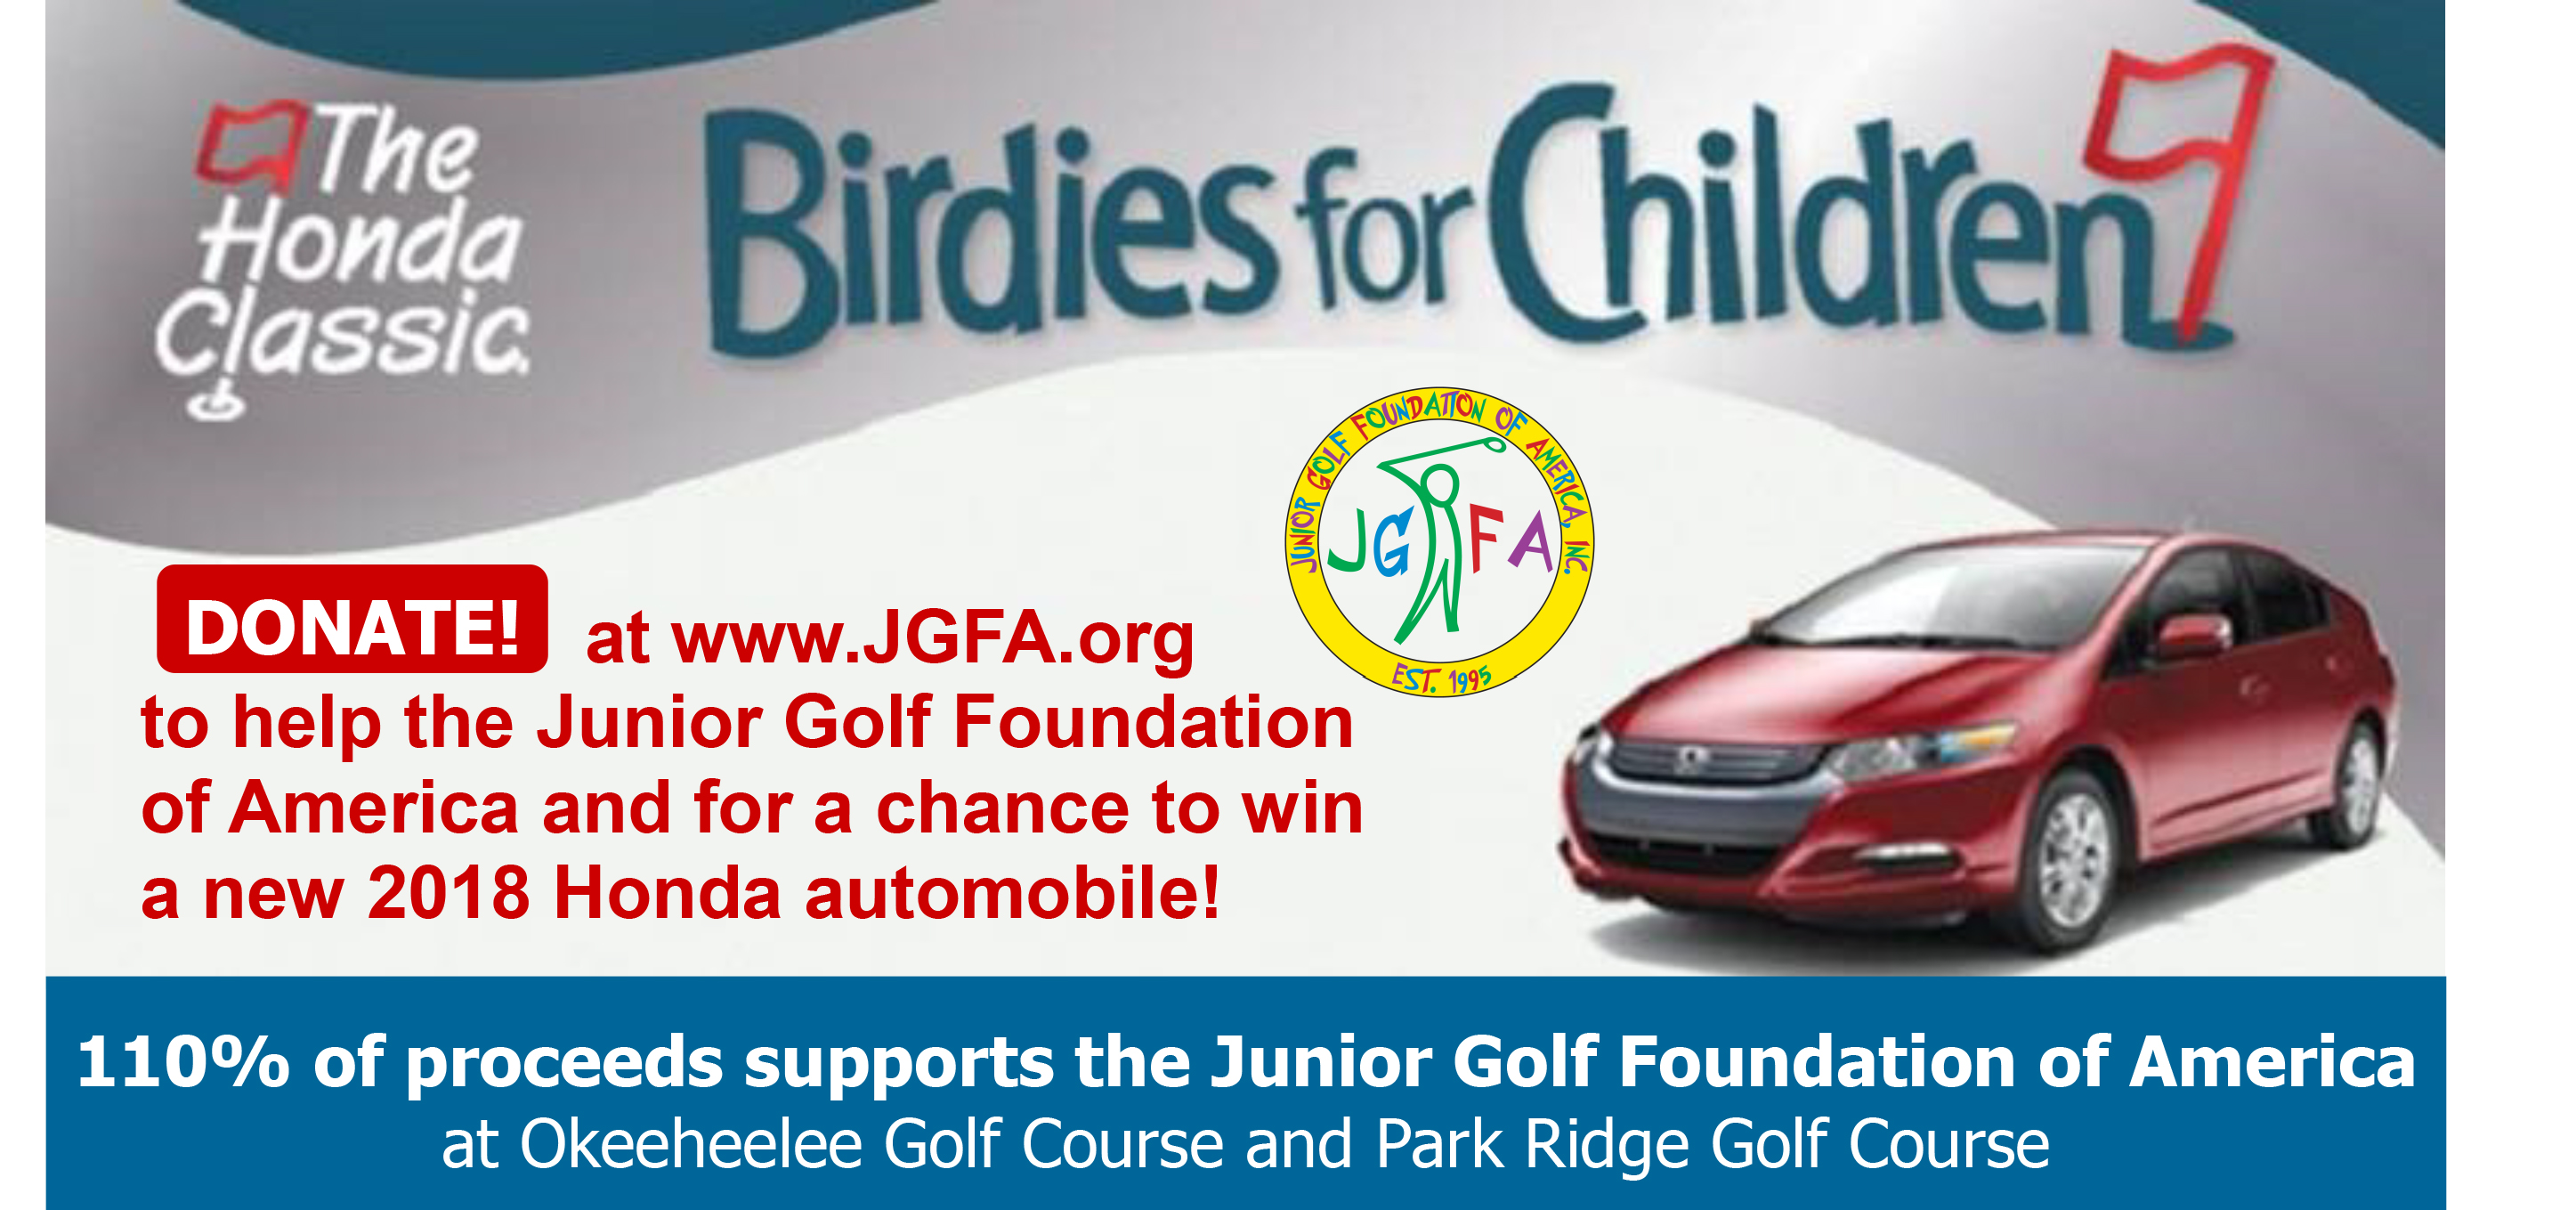 Birdies for Children Web link box 2017 2018 Donate at www.jgfa.org